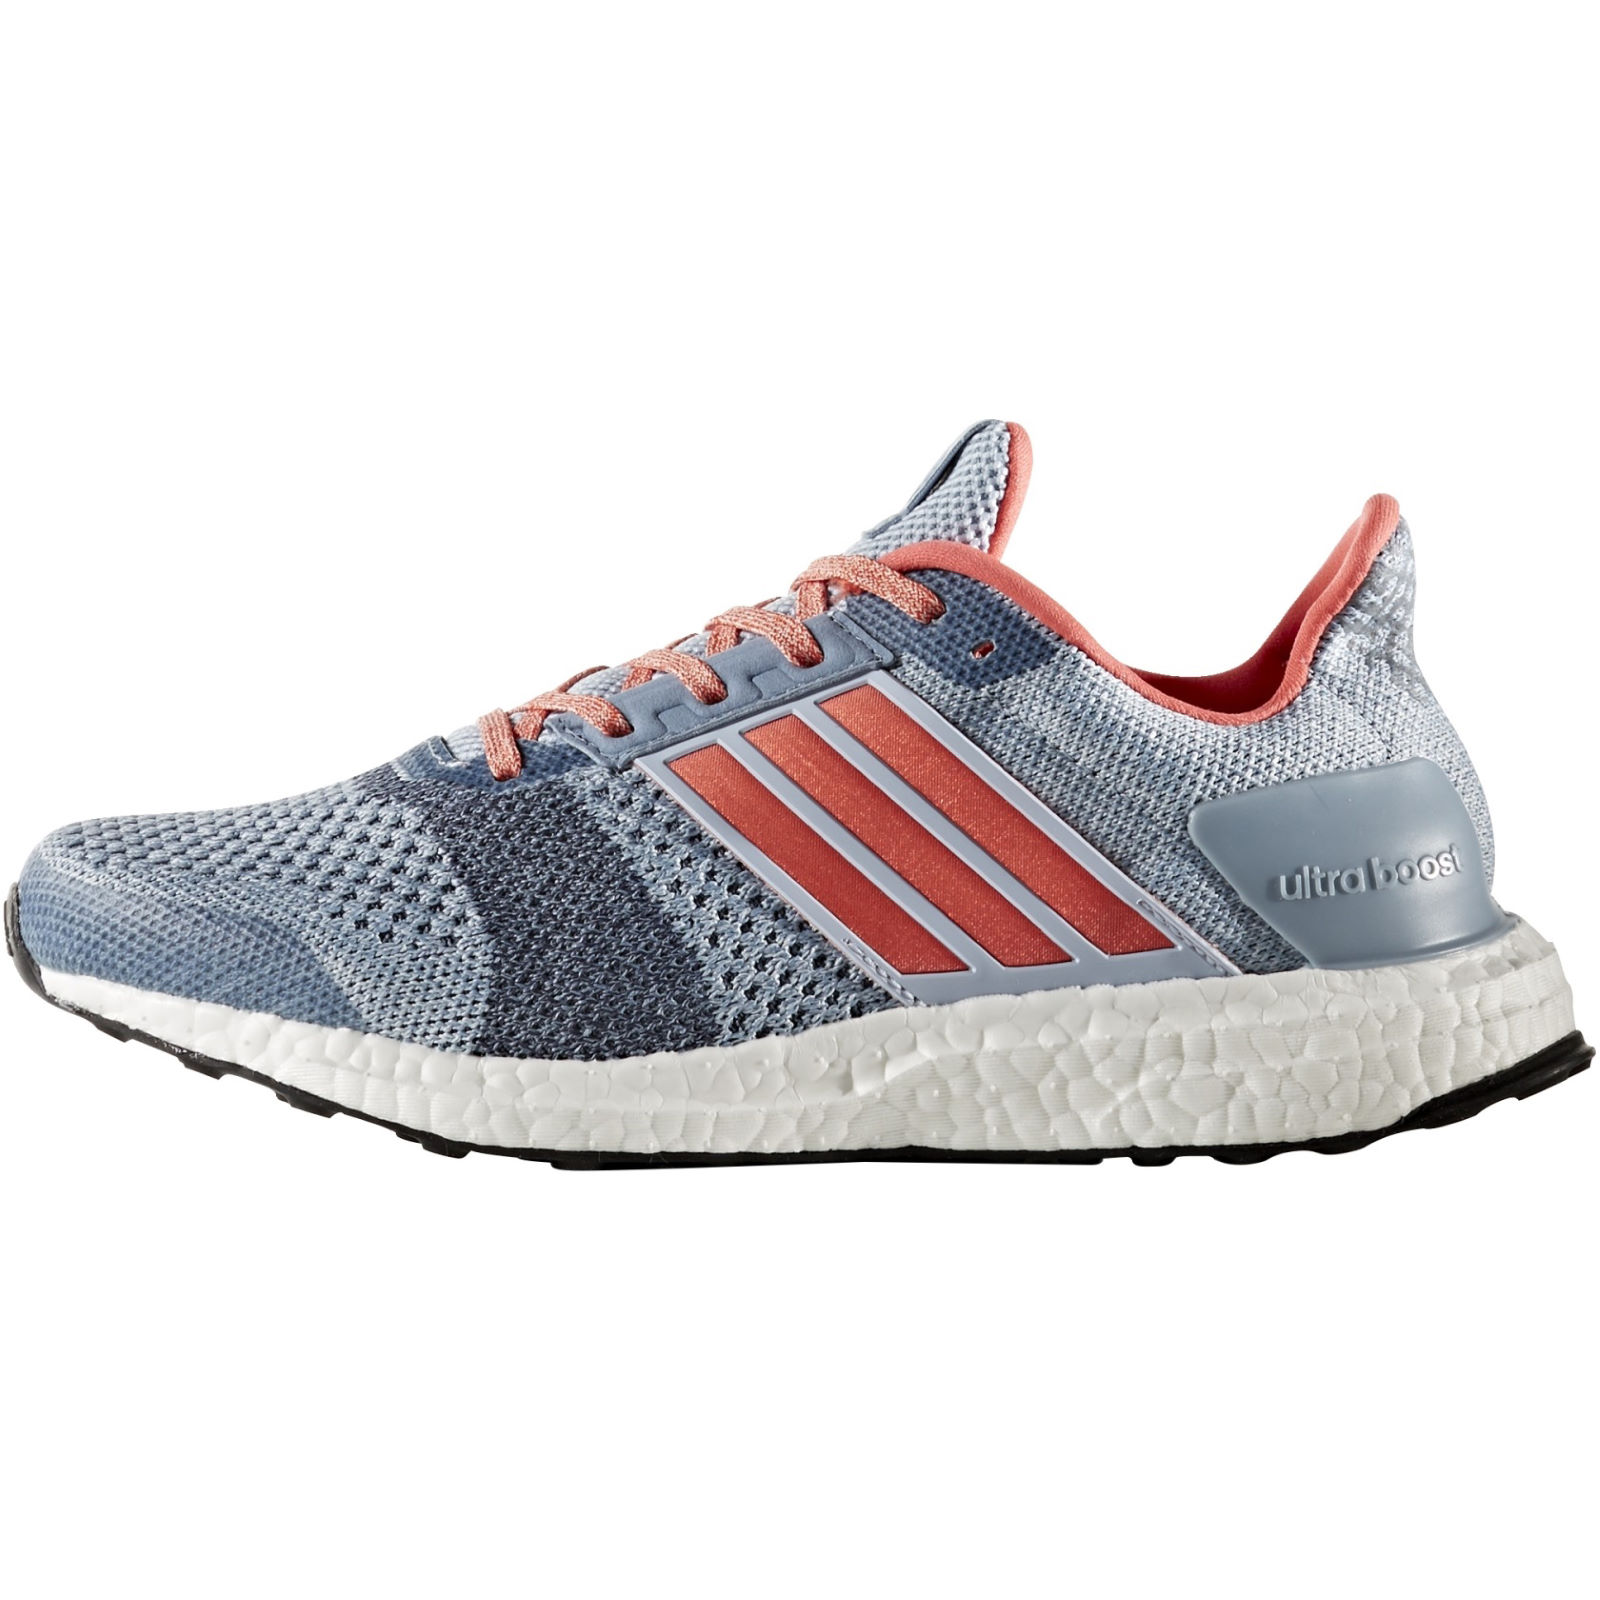 adidas boost women's running shoes